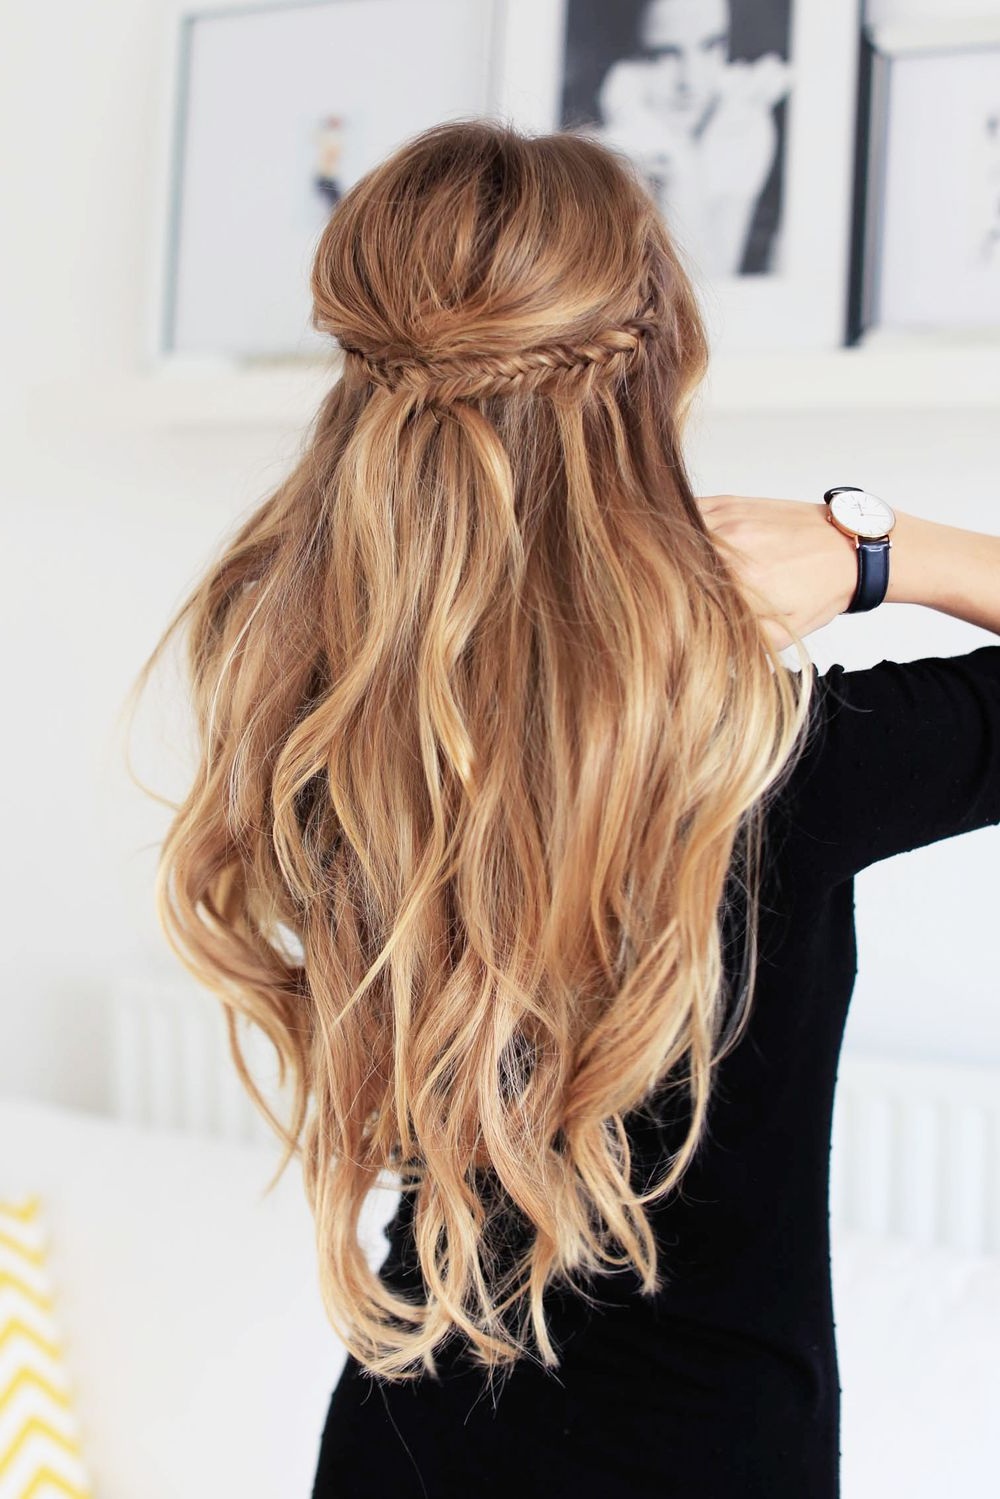 Such A Cute And Simple Half Up Half Down Hair Do! (View 6 of 20)